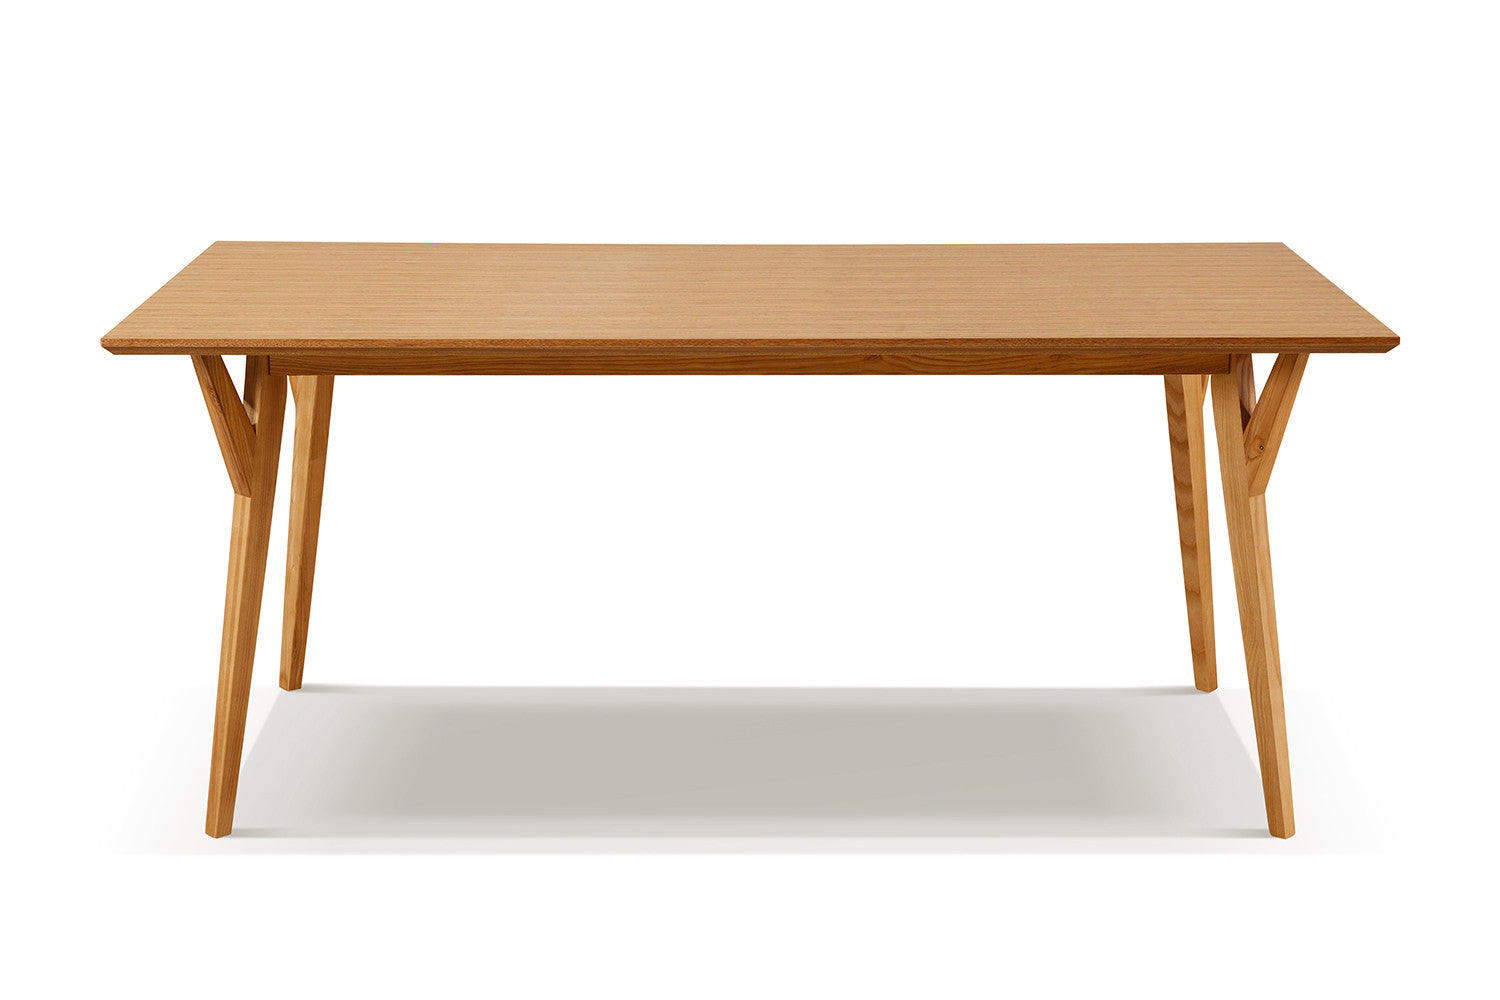 Table salle a manger scandinave for Flamant table salle manger